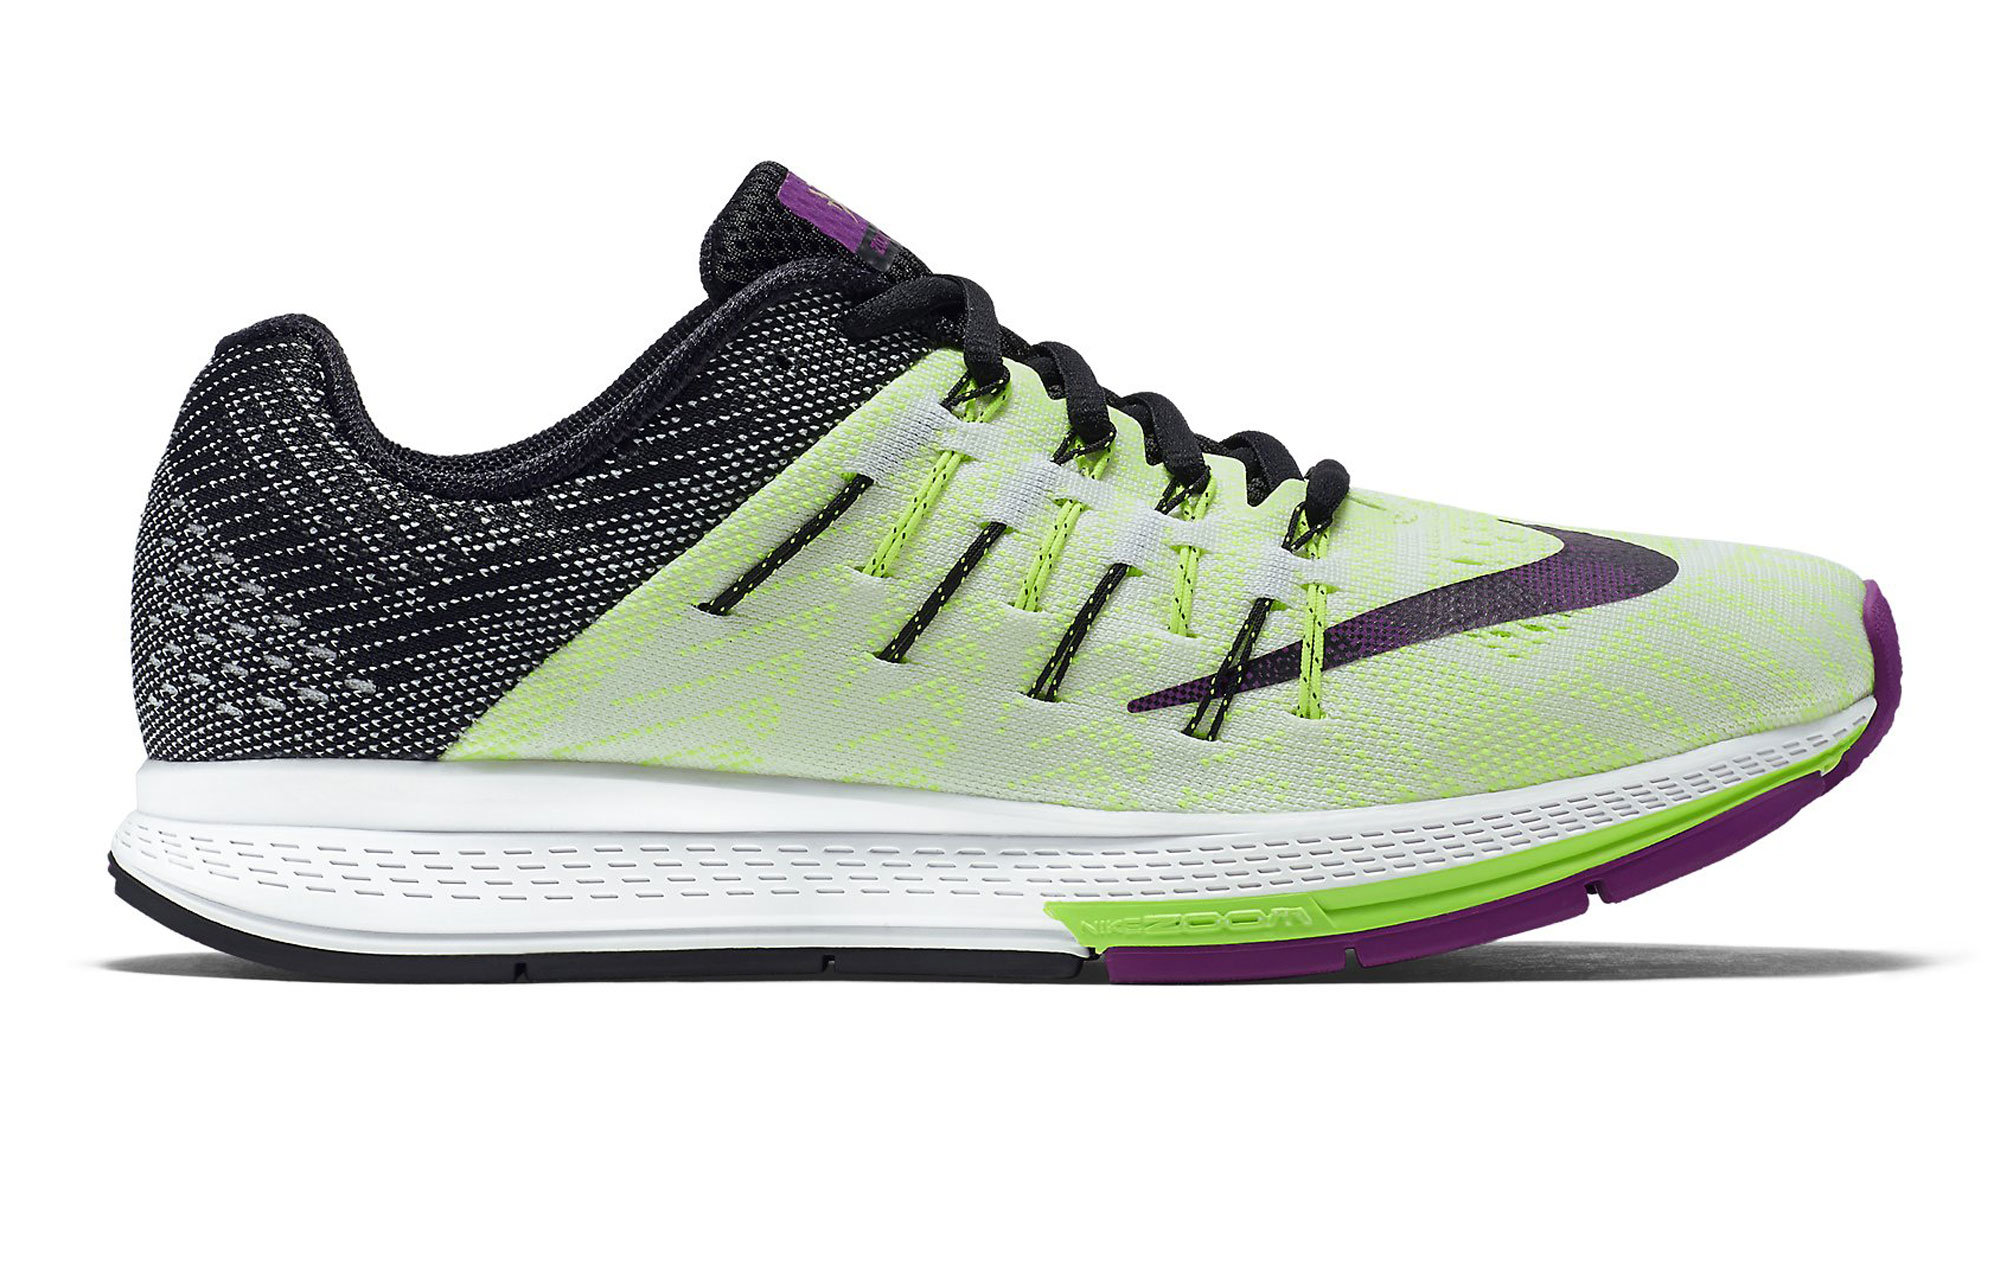 the best attitude d547a d9a3f Chaussures de Running Nike AIR ZOOM ELITE 8